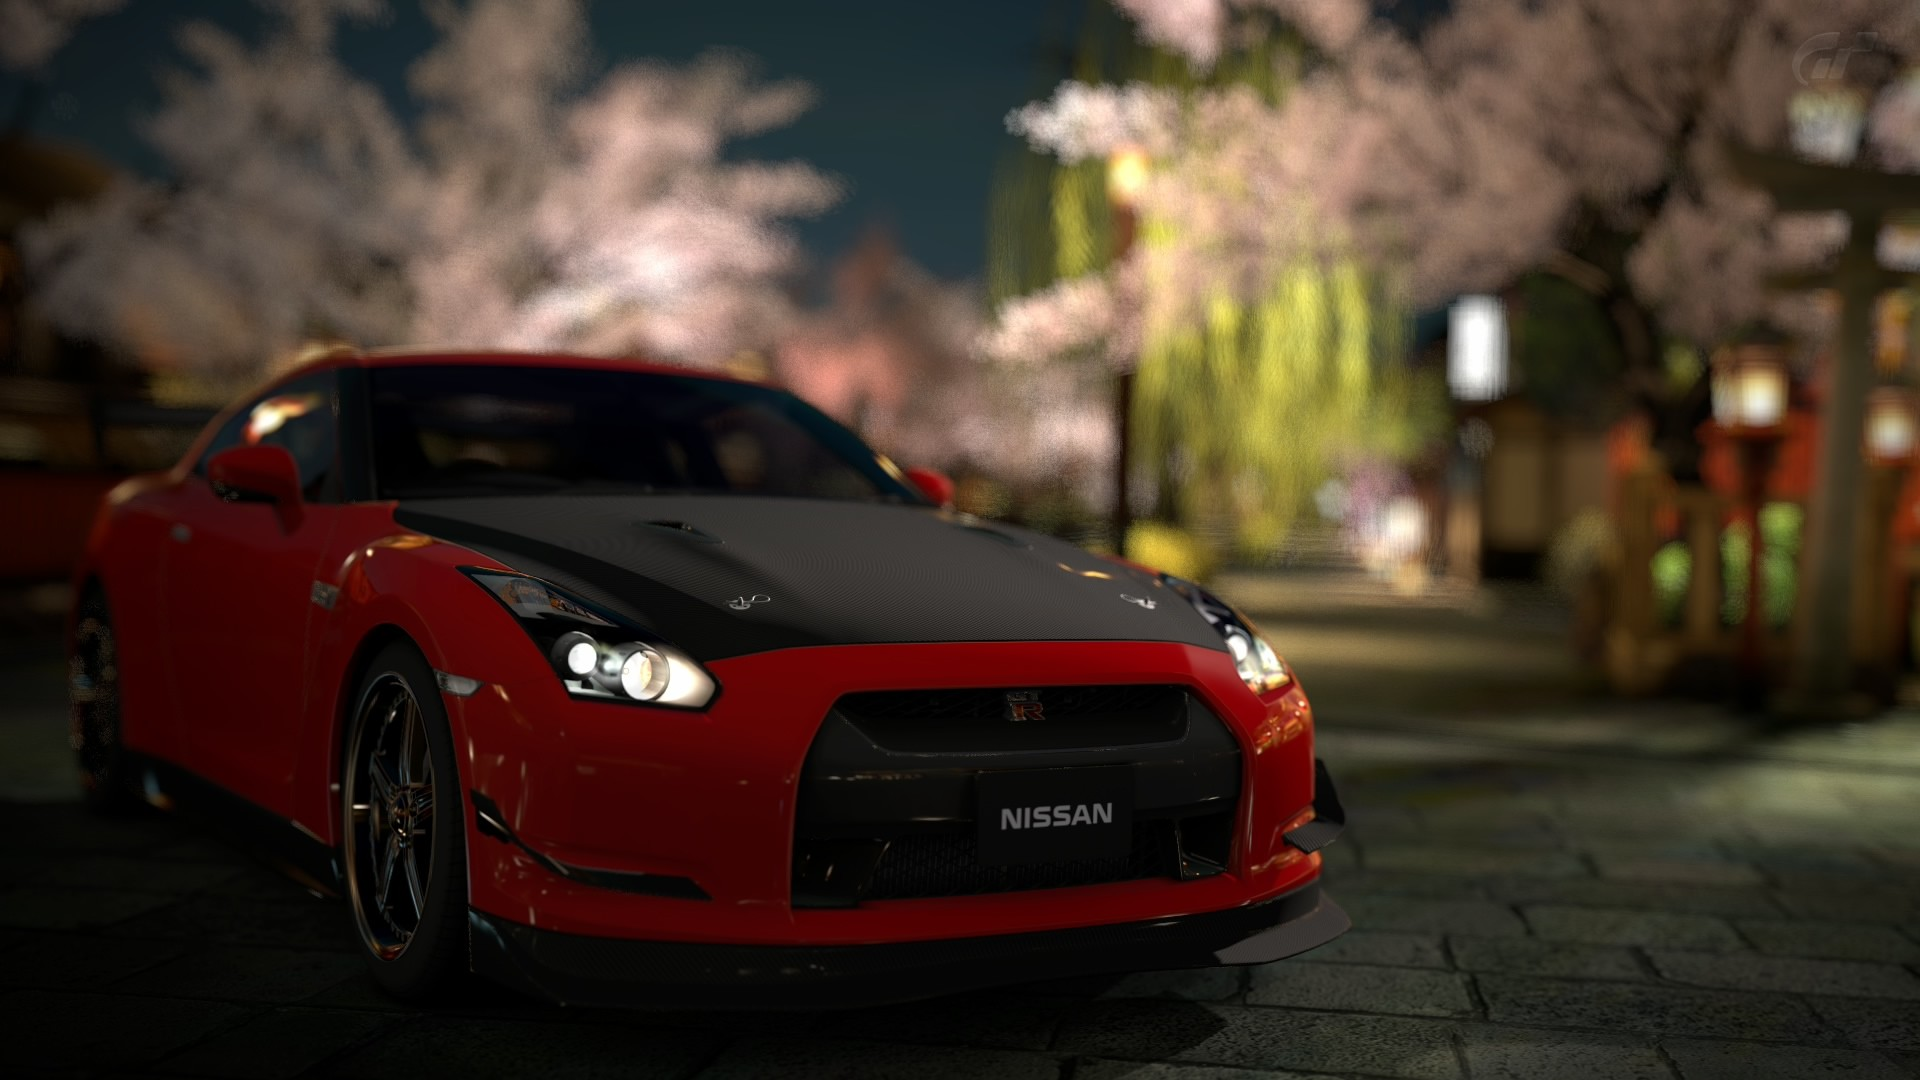 All About Nissan GTR